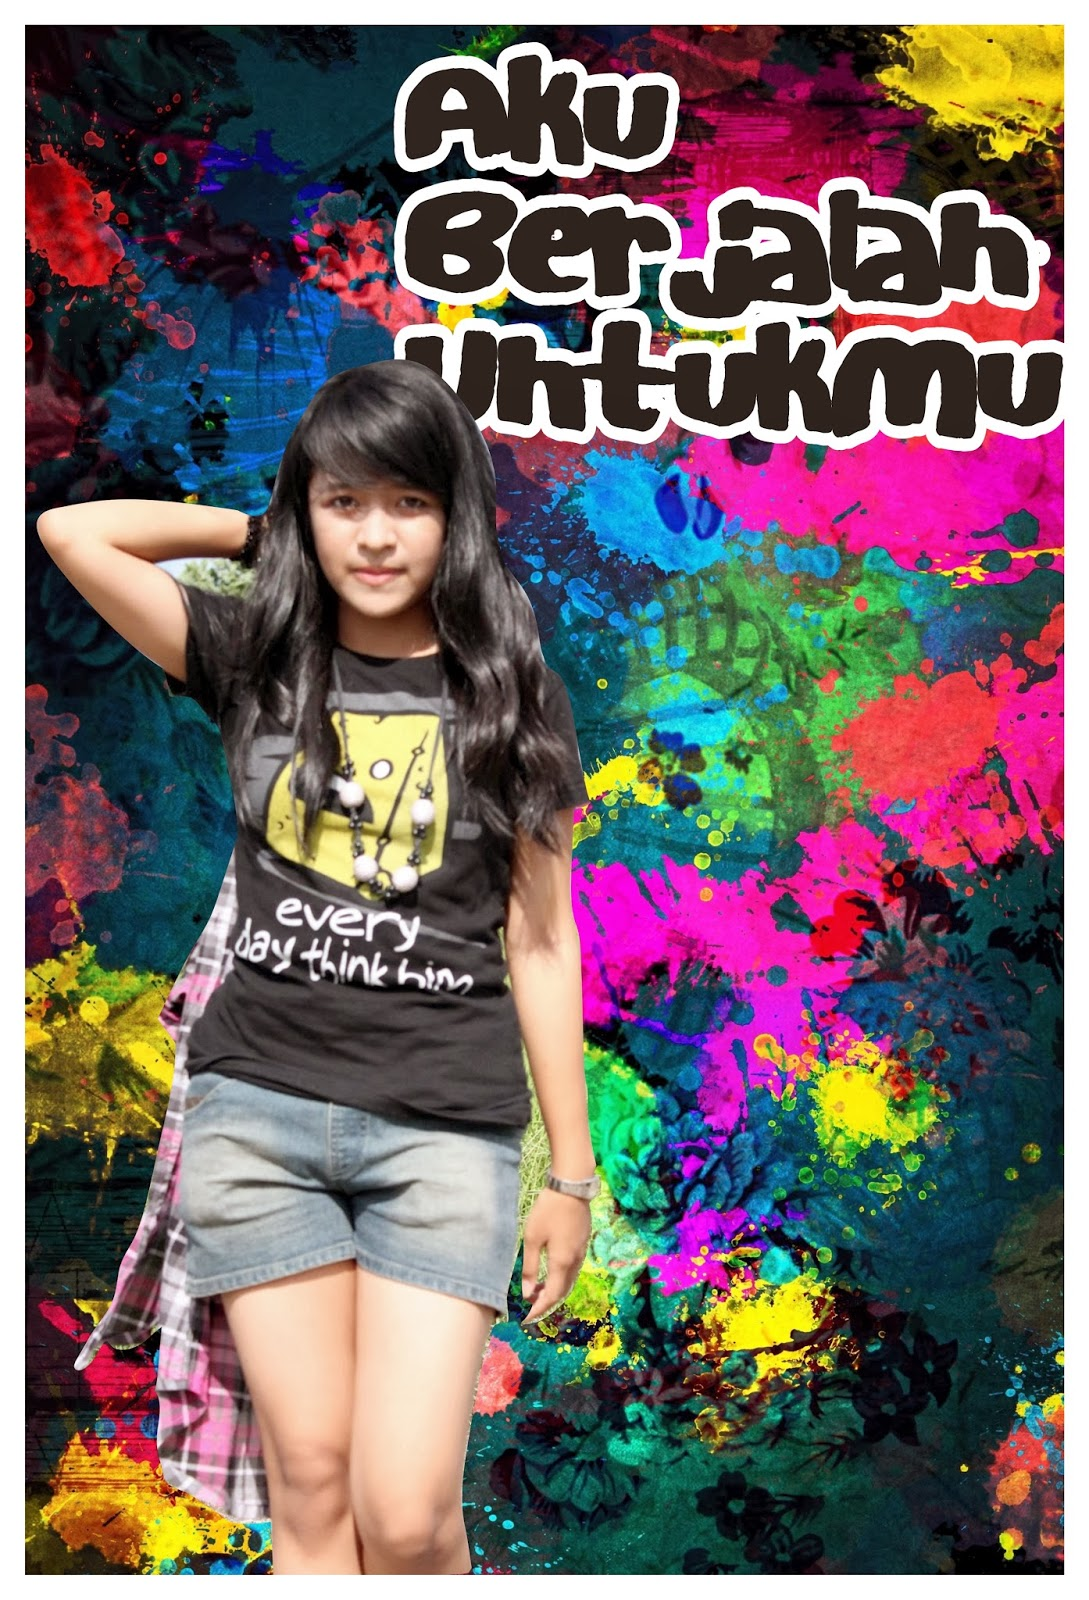 Cara Ganti Background Foto Di Corel : ganti, background, corel, Mudah, Mengganti, Background, Corel, Versi